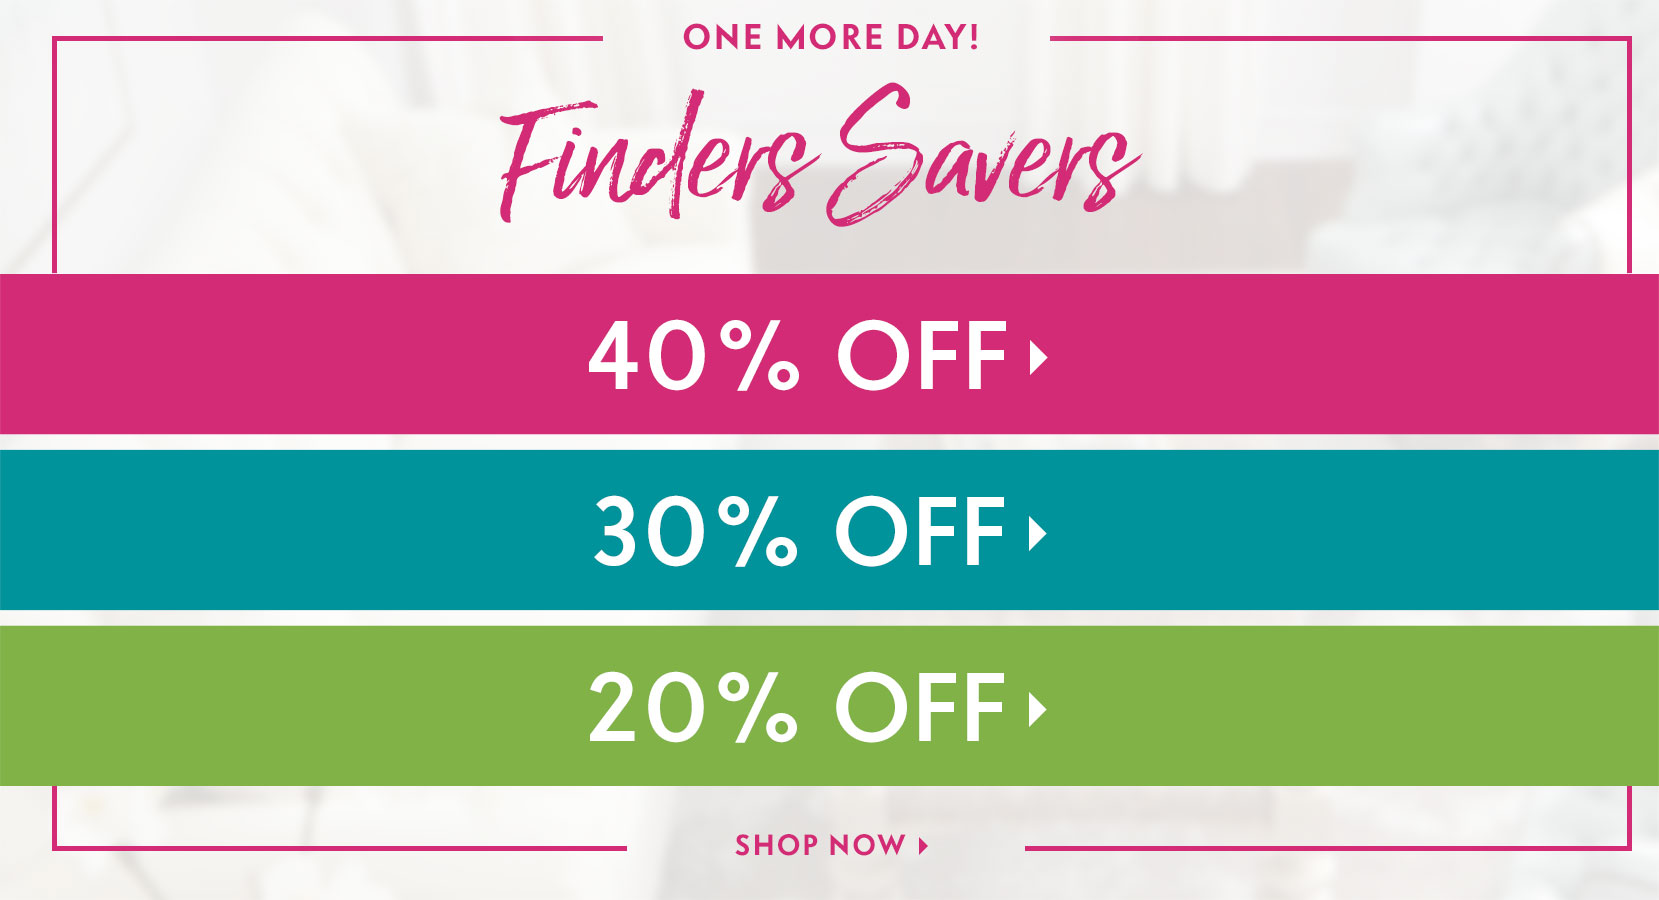 Through Wednesday Only - Finders Savers Your Savings